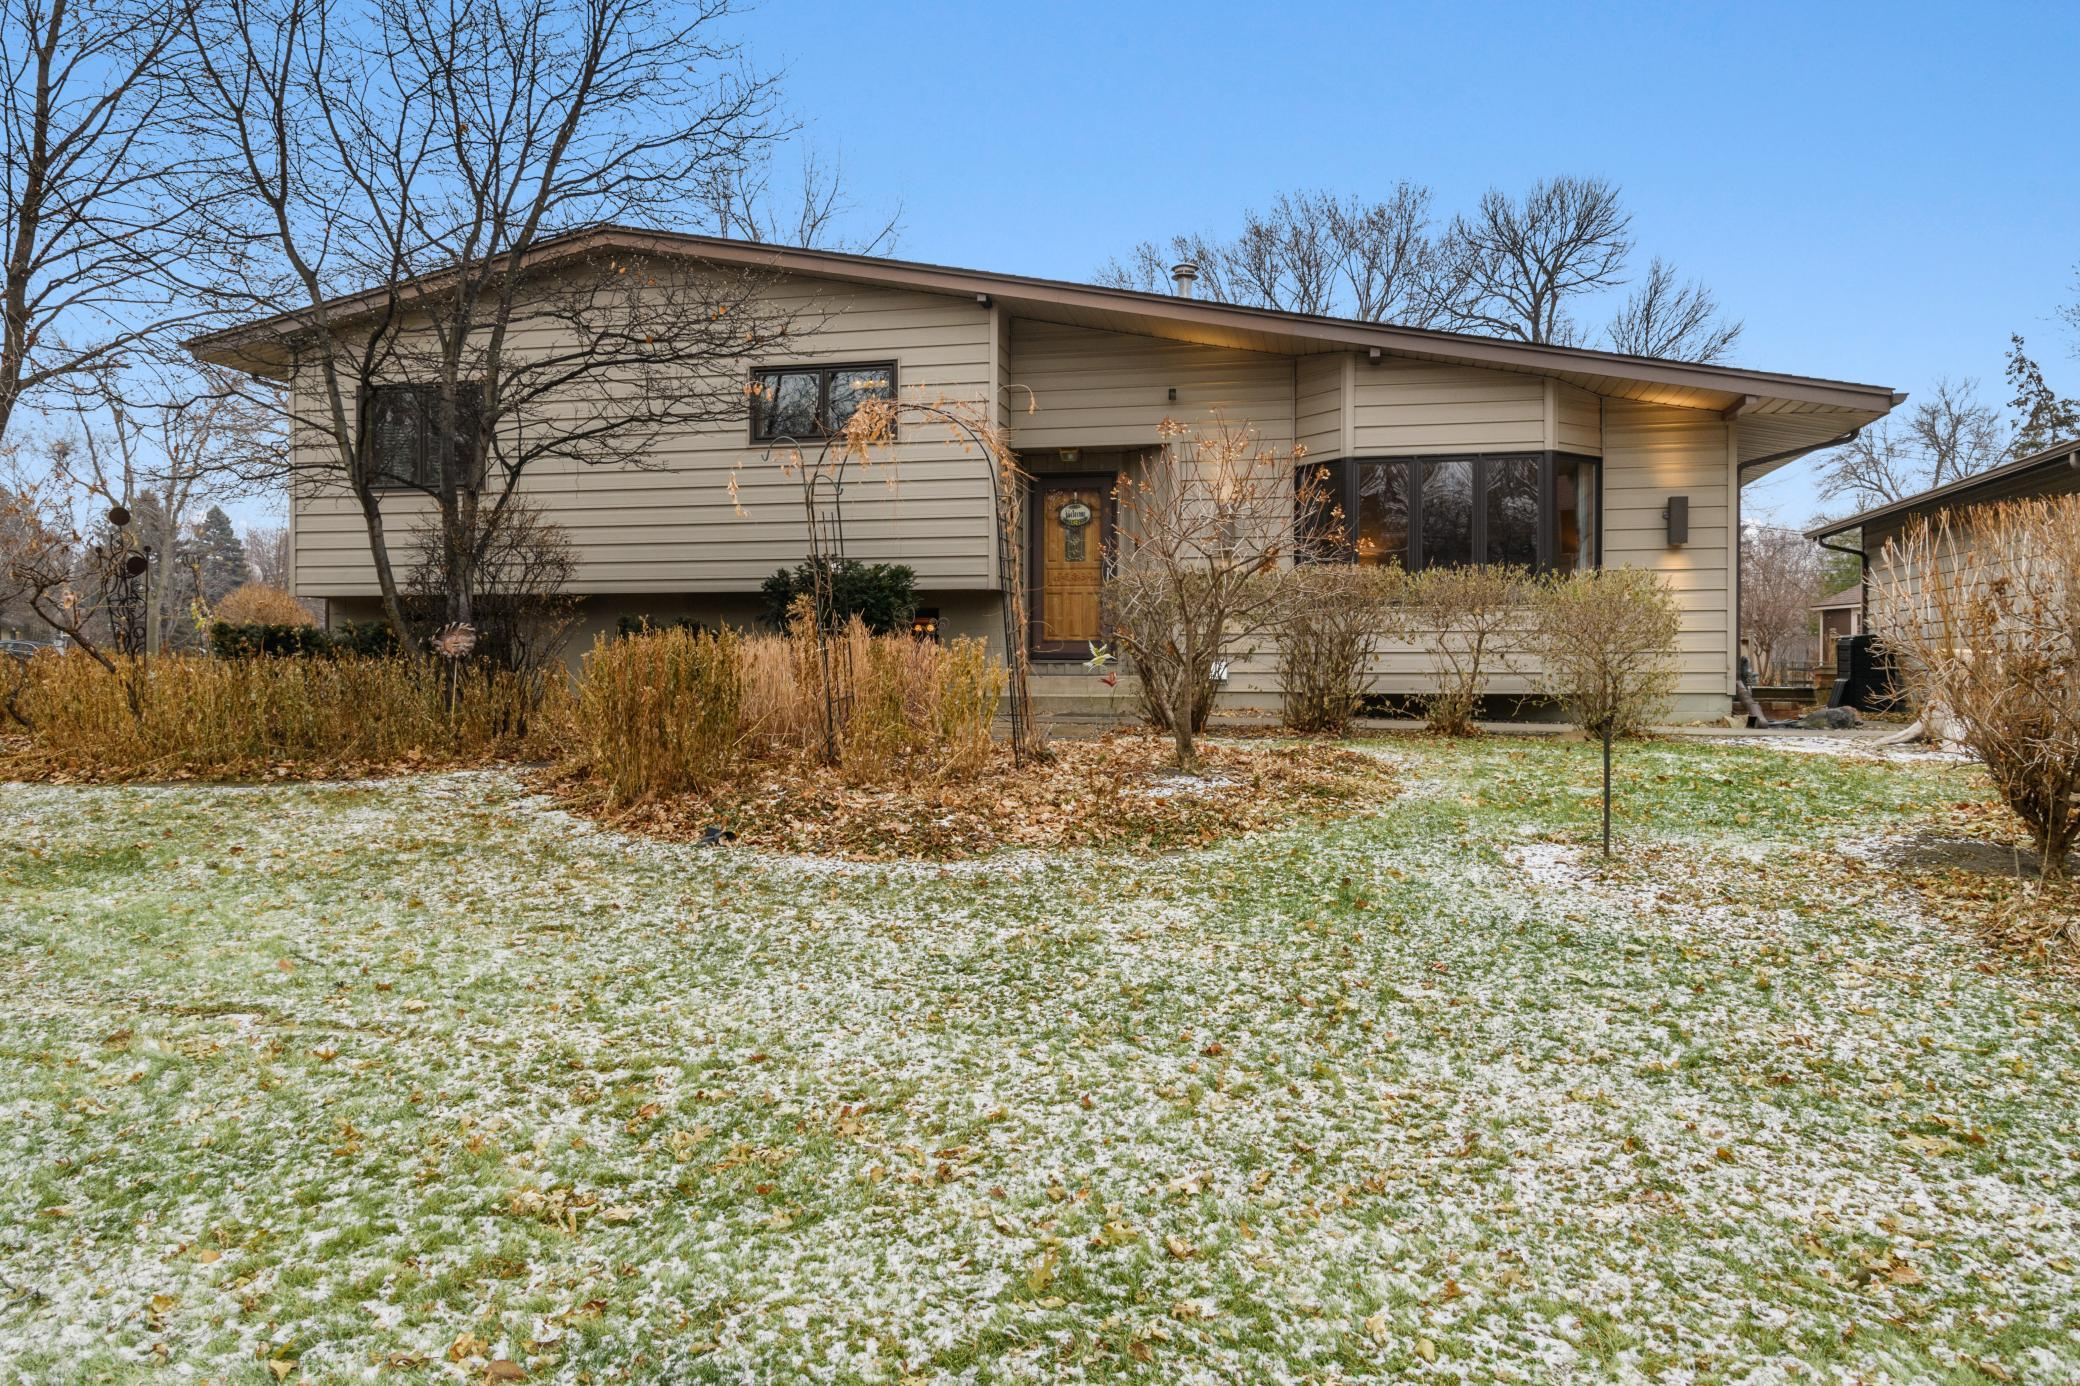 8901 47th Avenue N Property Photo - New Hope, MN real estate listing